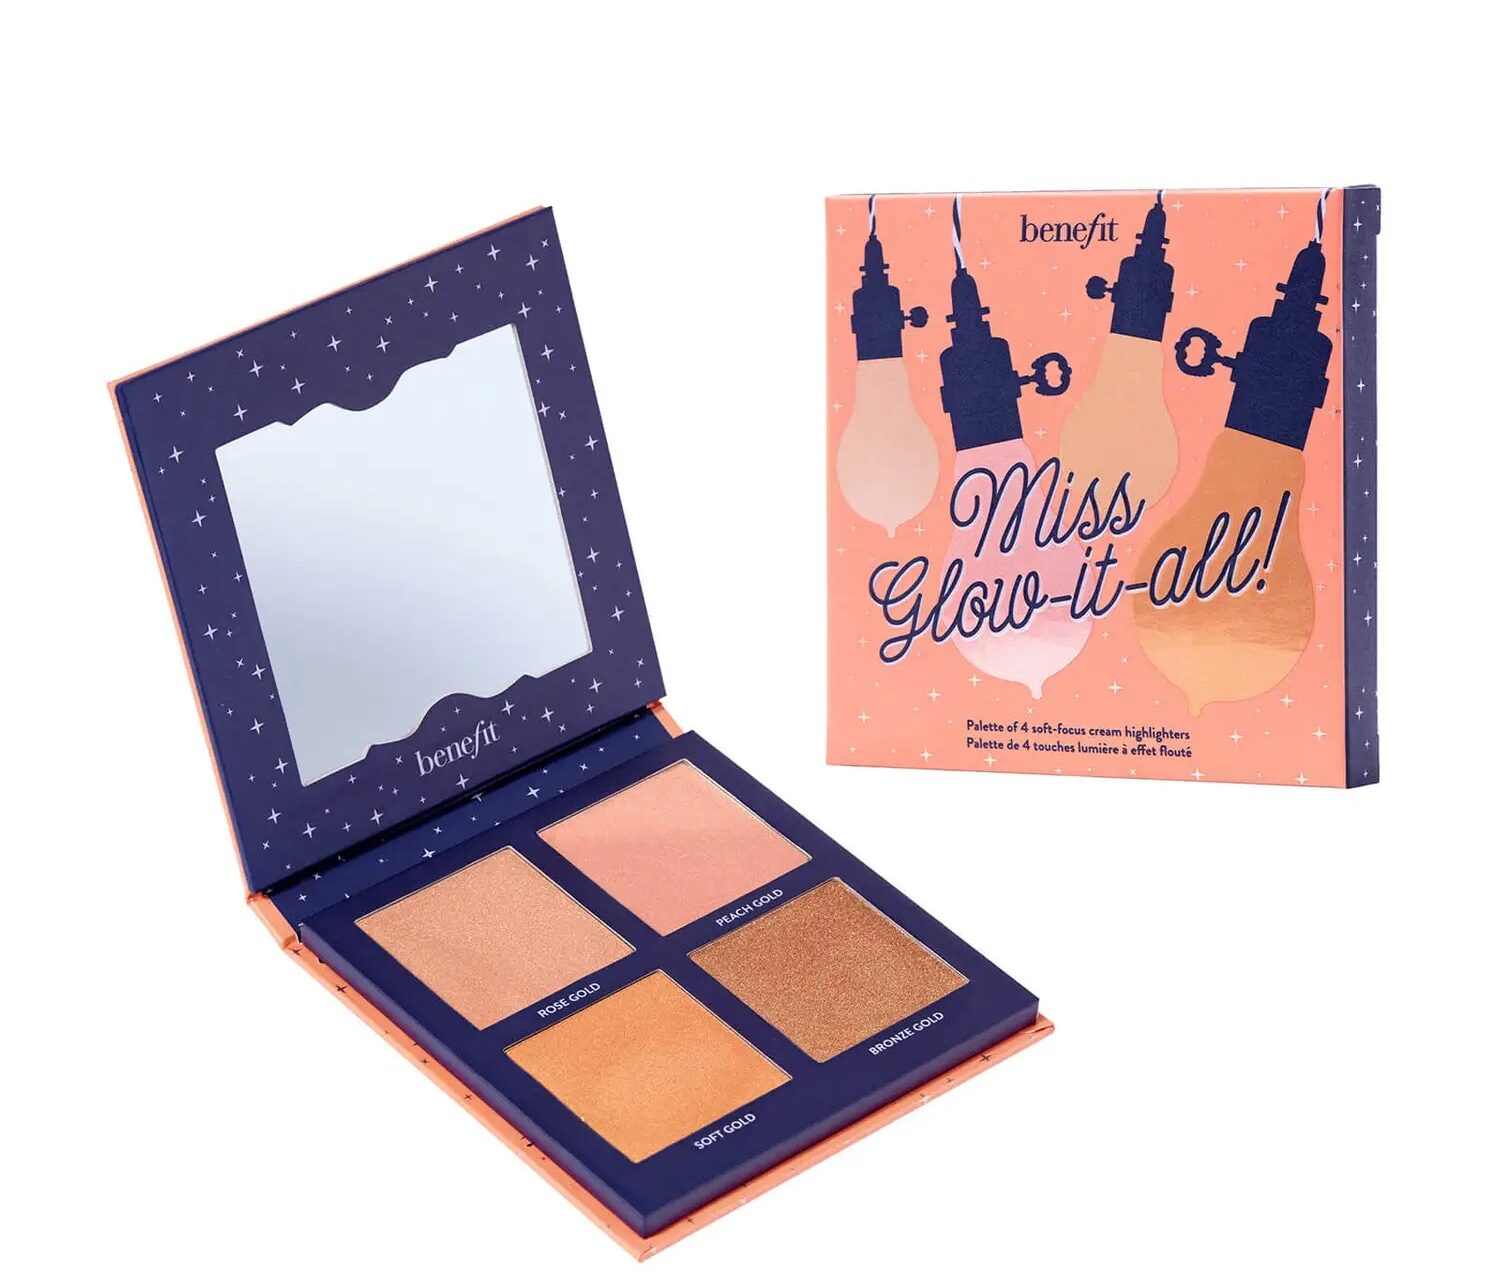 Benefit Cosmetics Miss Glow It All Highlighter Palette